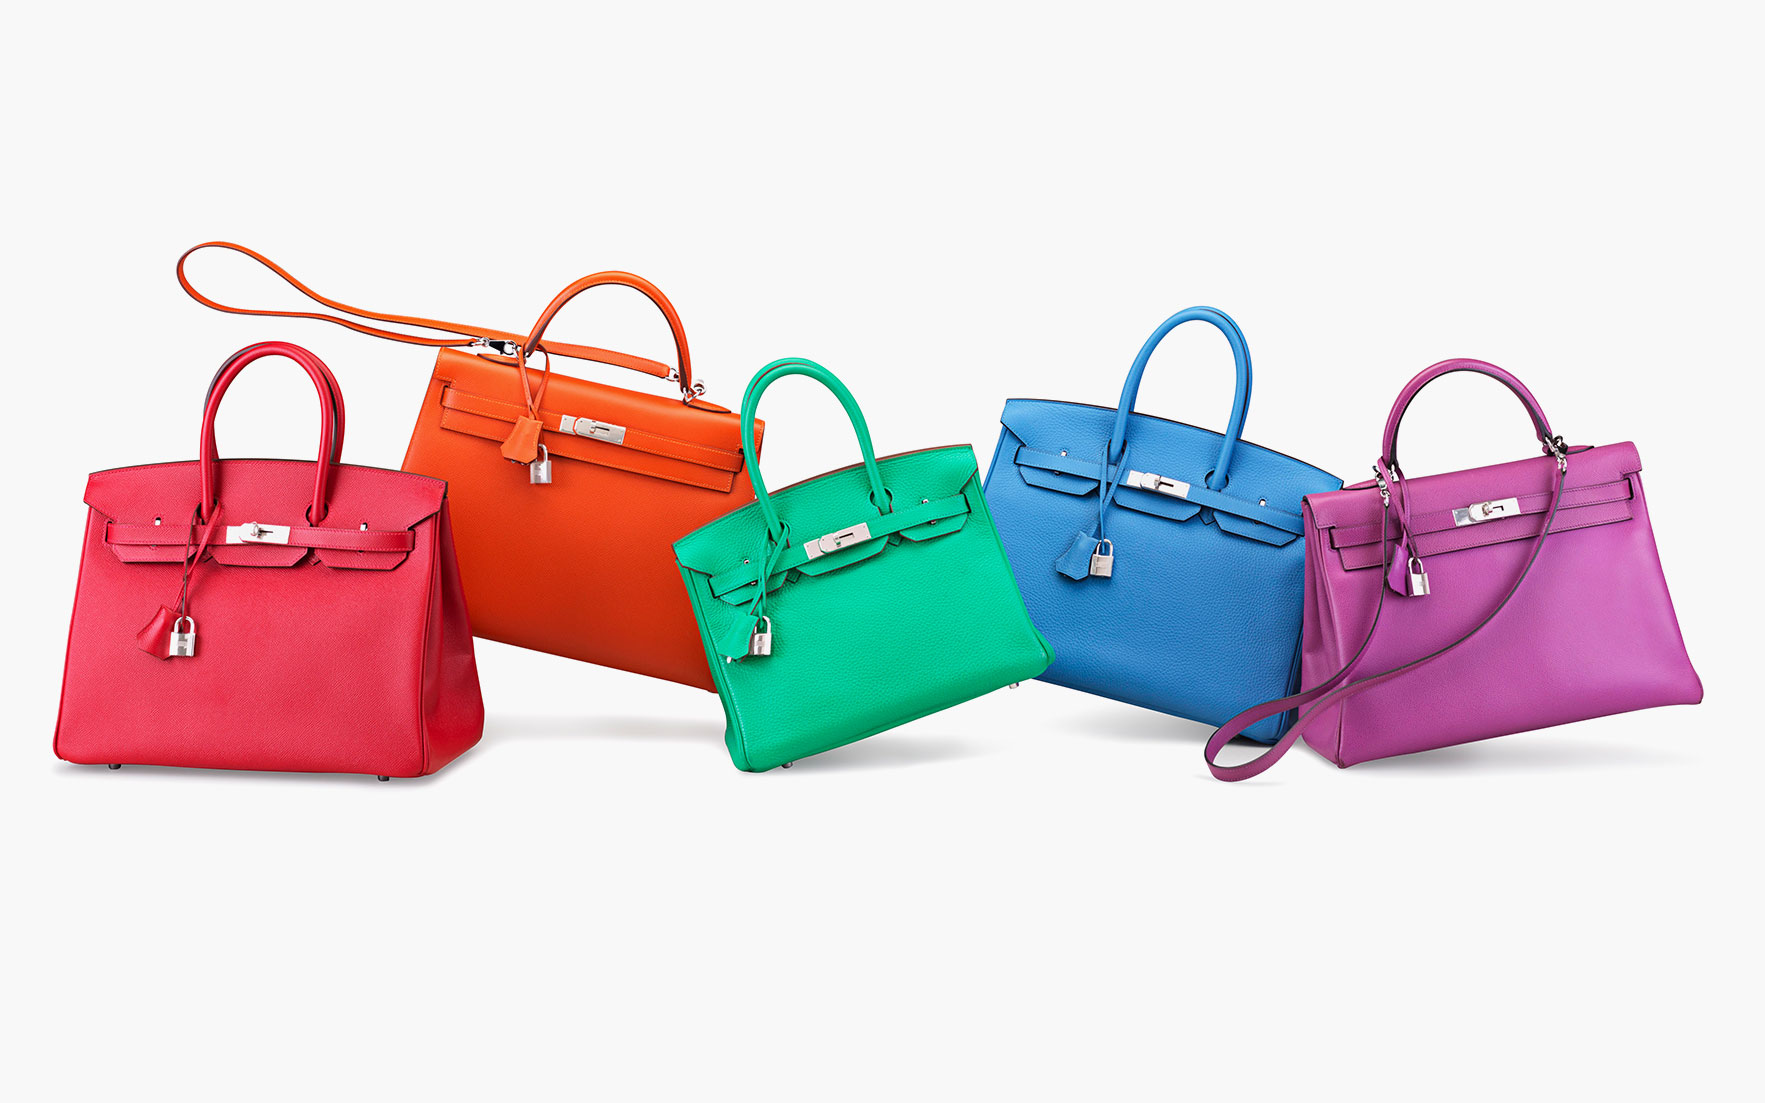 Hermès handbags for every budg